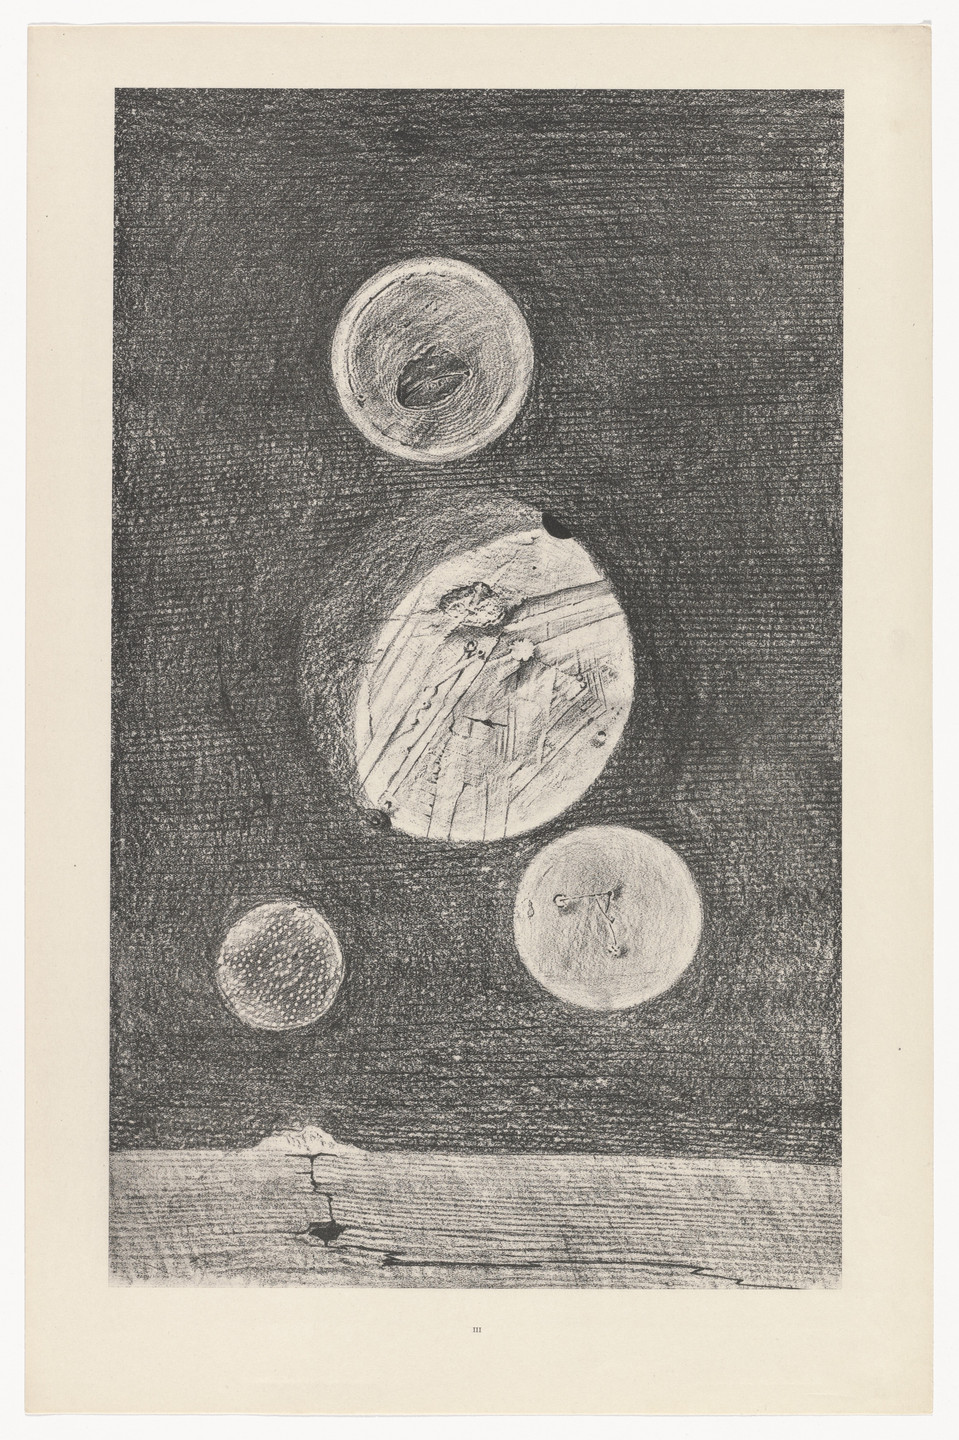 Max Ernst. Little Tables around the Earth (Petites tables autour de la terre) from Natural History (Histoire naturelle). c. 1925, published 1926